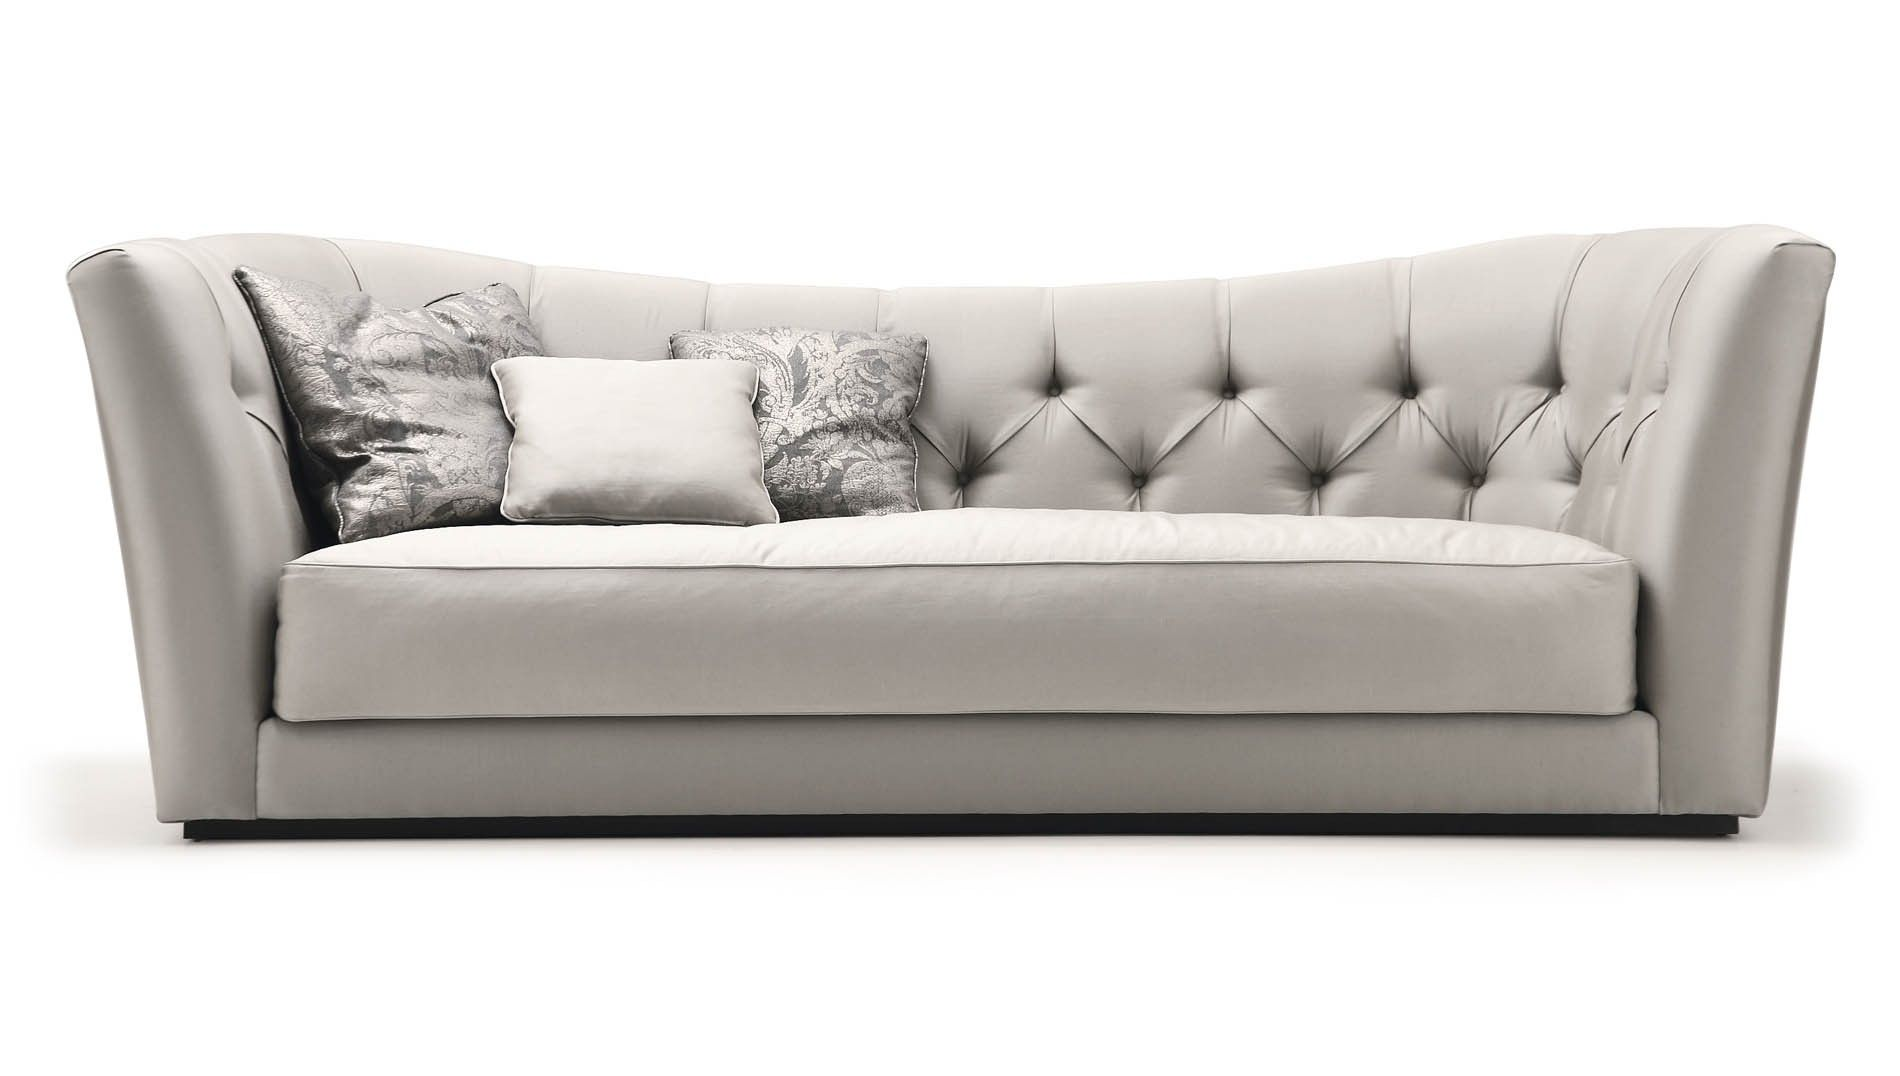 Butterfly 3-Seater Sofa in 2019 | 1 | Sofa, Sofa design, Luxury sofa